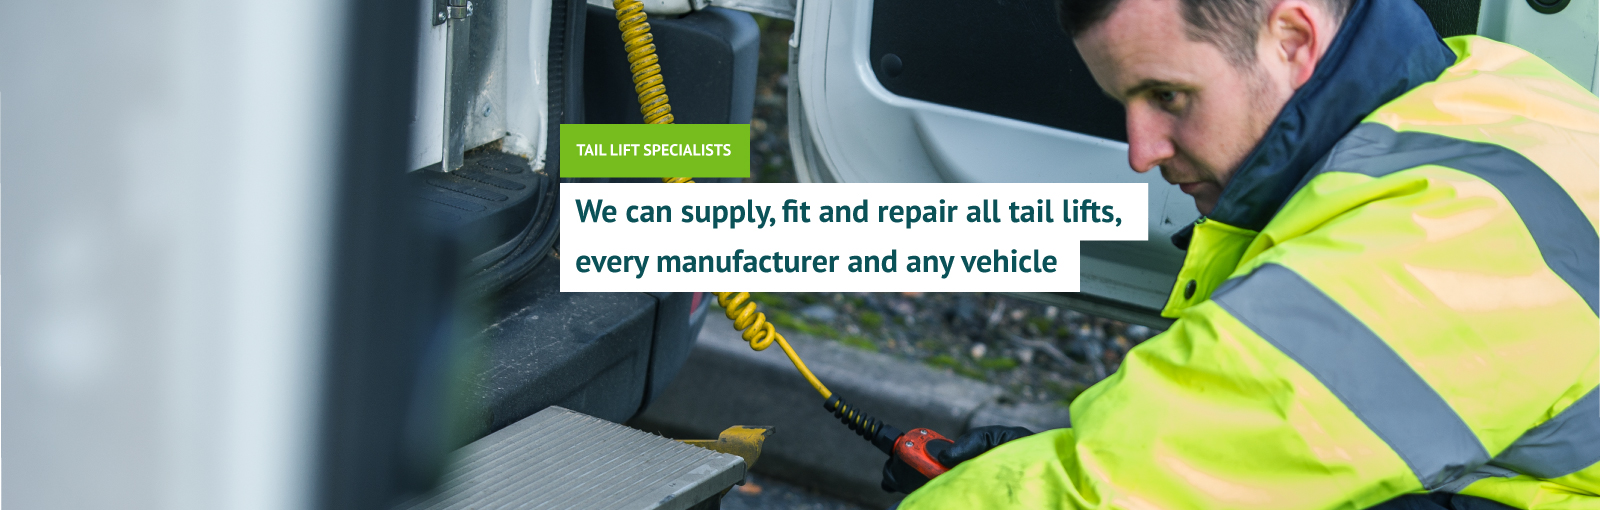 Taking care of all your tail lift needs